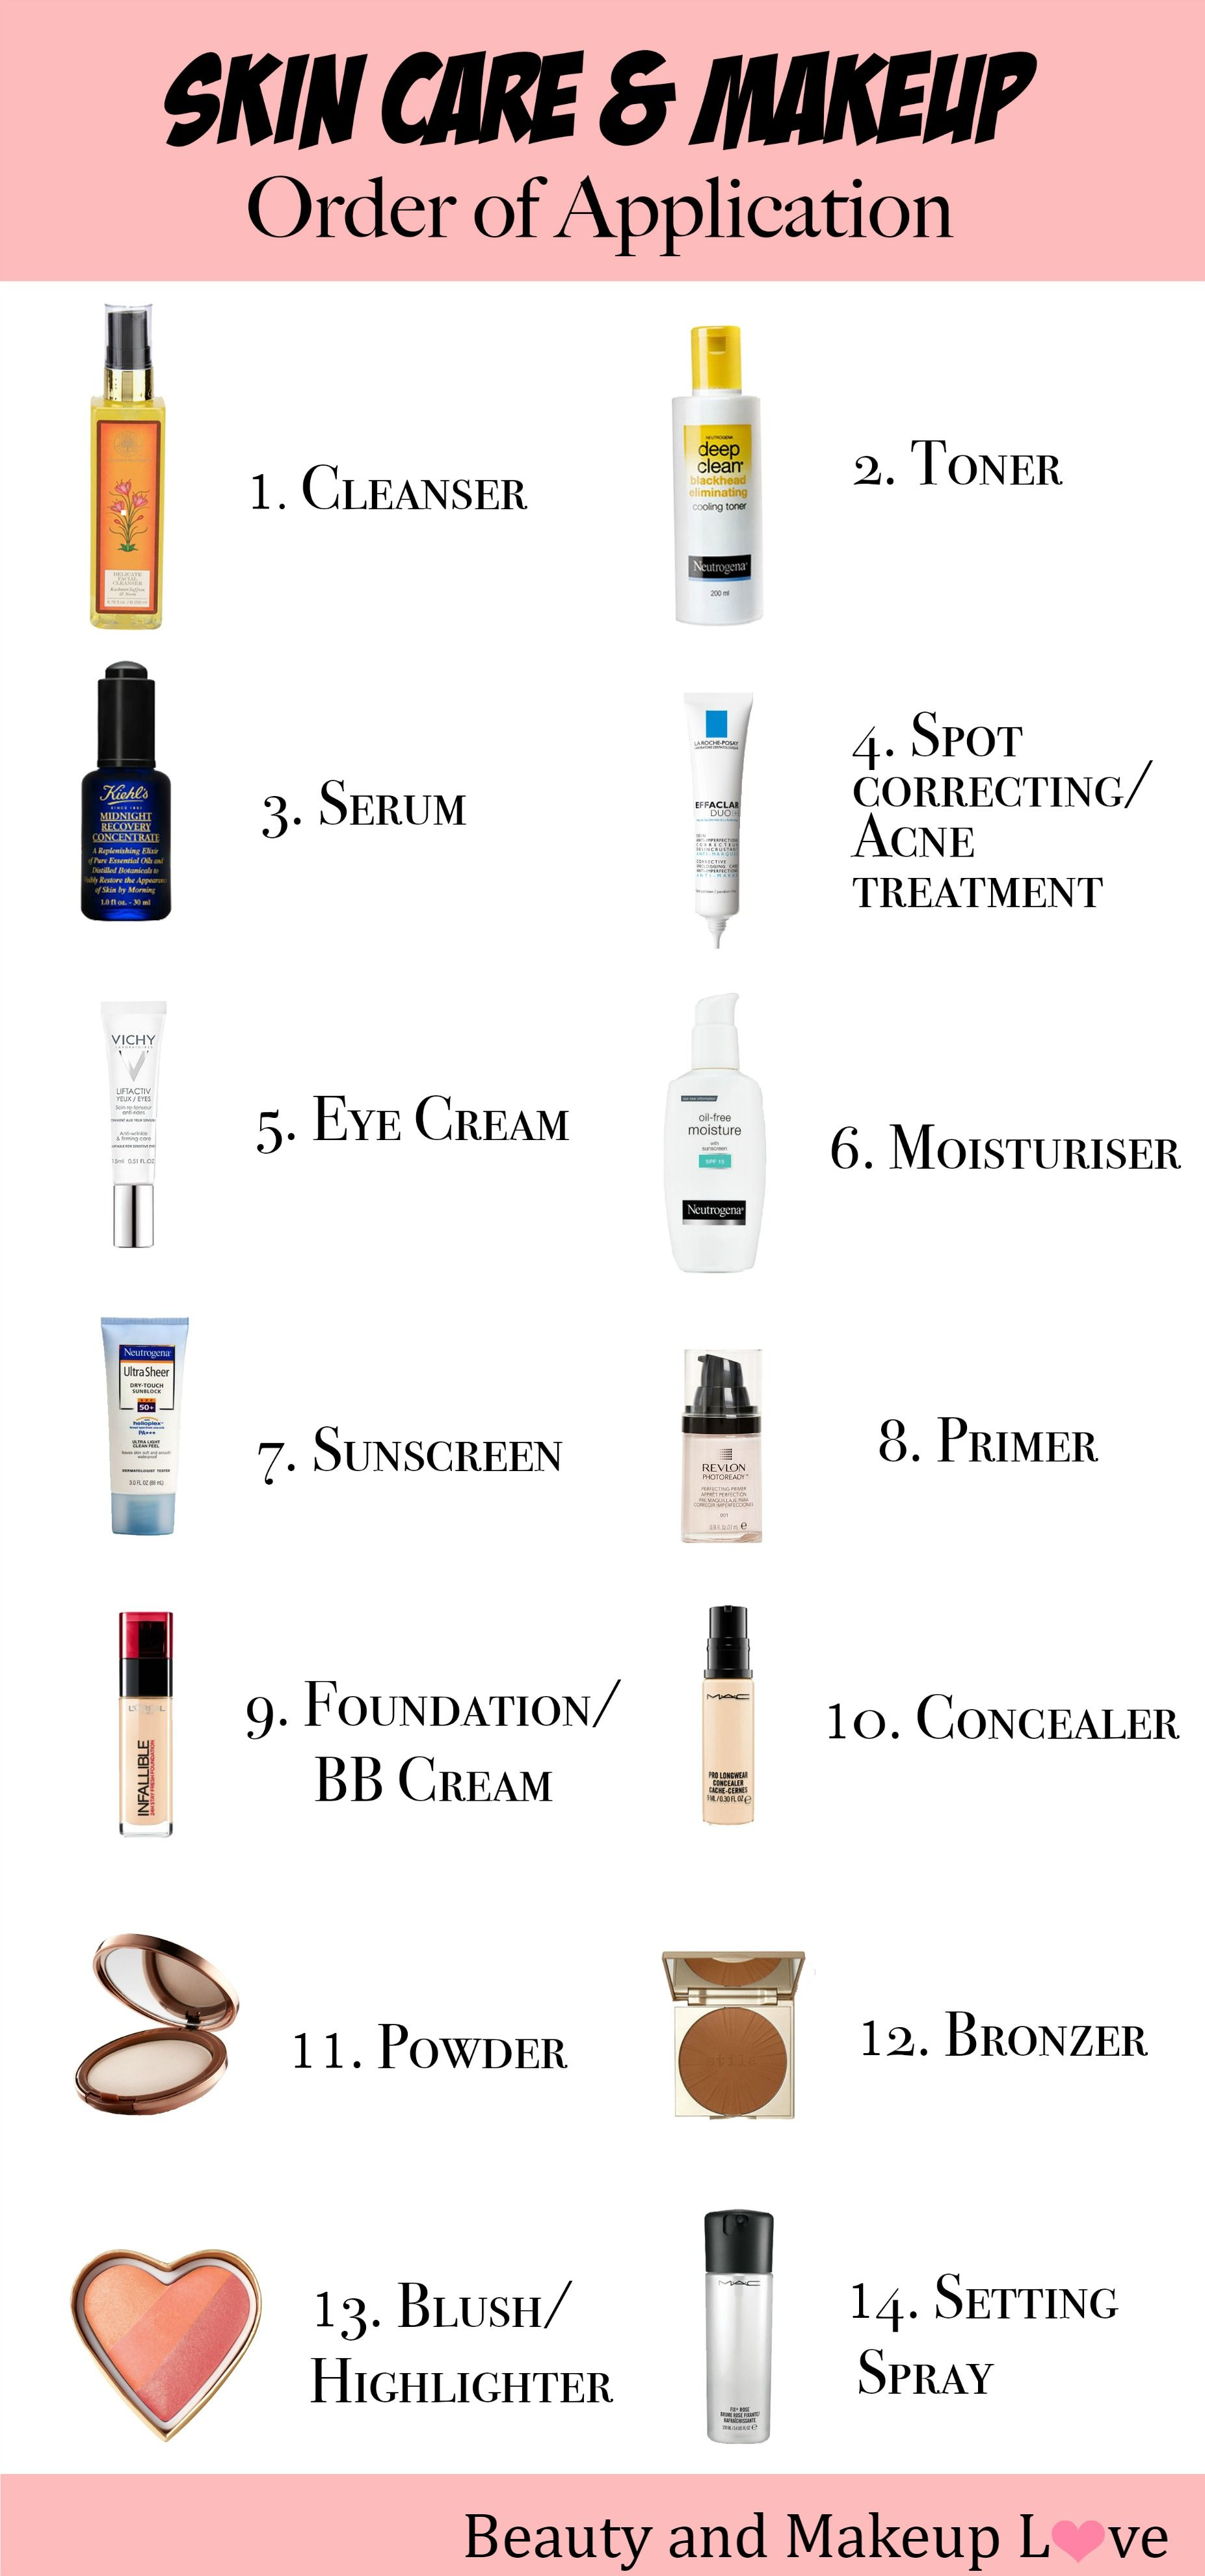 Face Products Order of Application, Skin Care Order